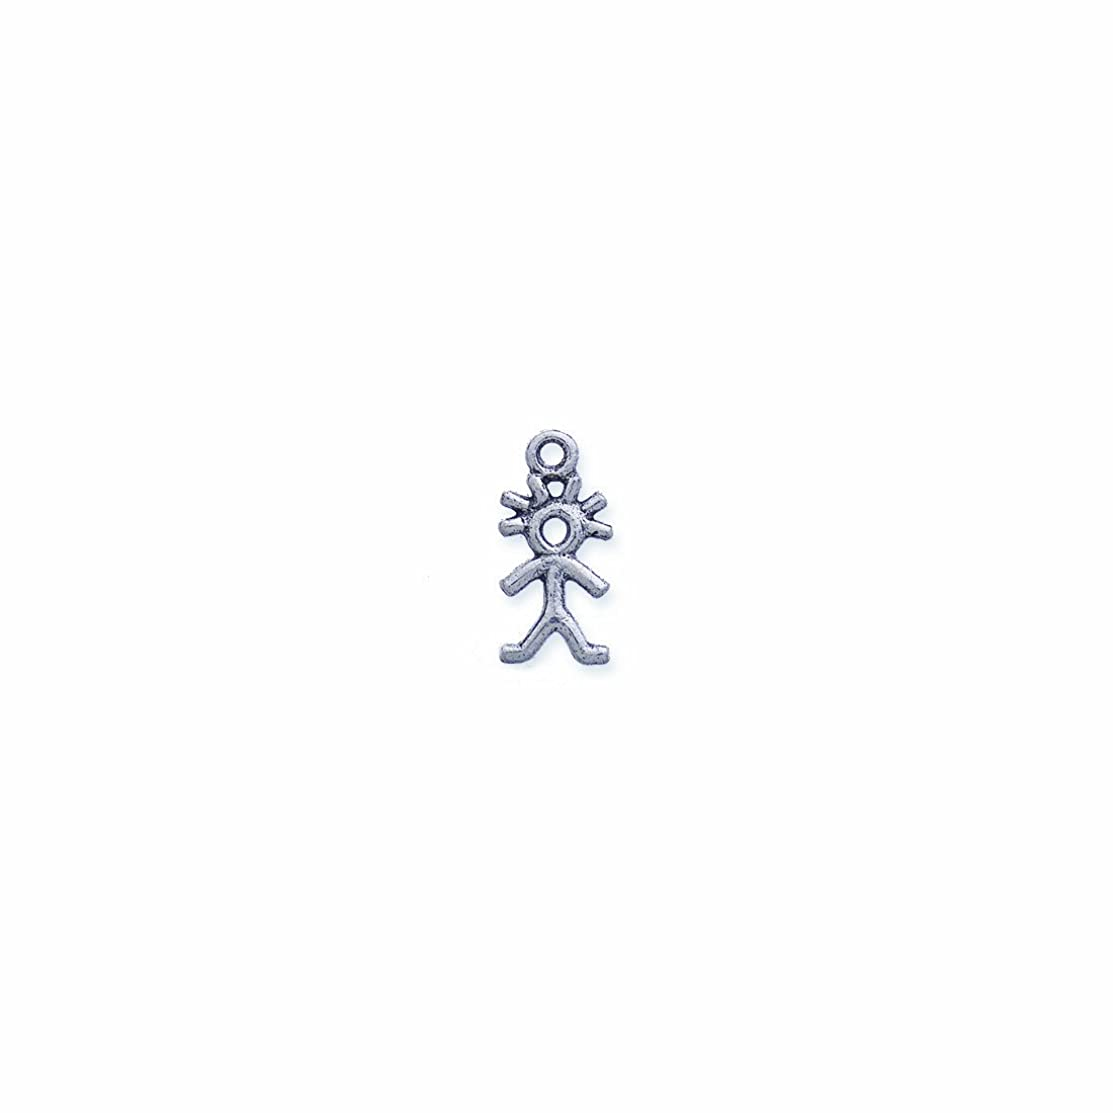 Shipwreck Beads Pewter Boy Stick Figure Charm, Silver, 10 by 20mm, 6-Piece